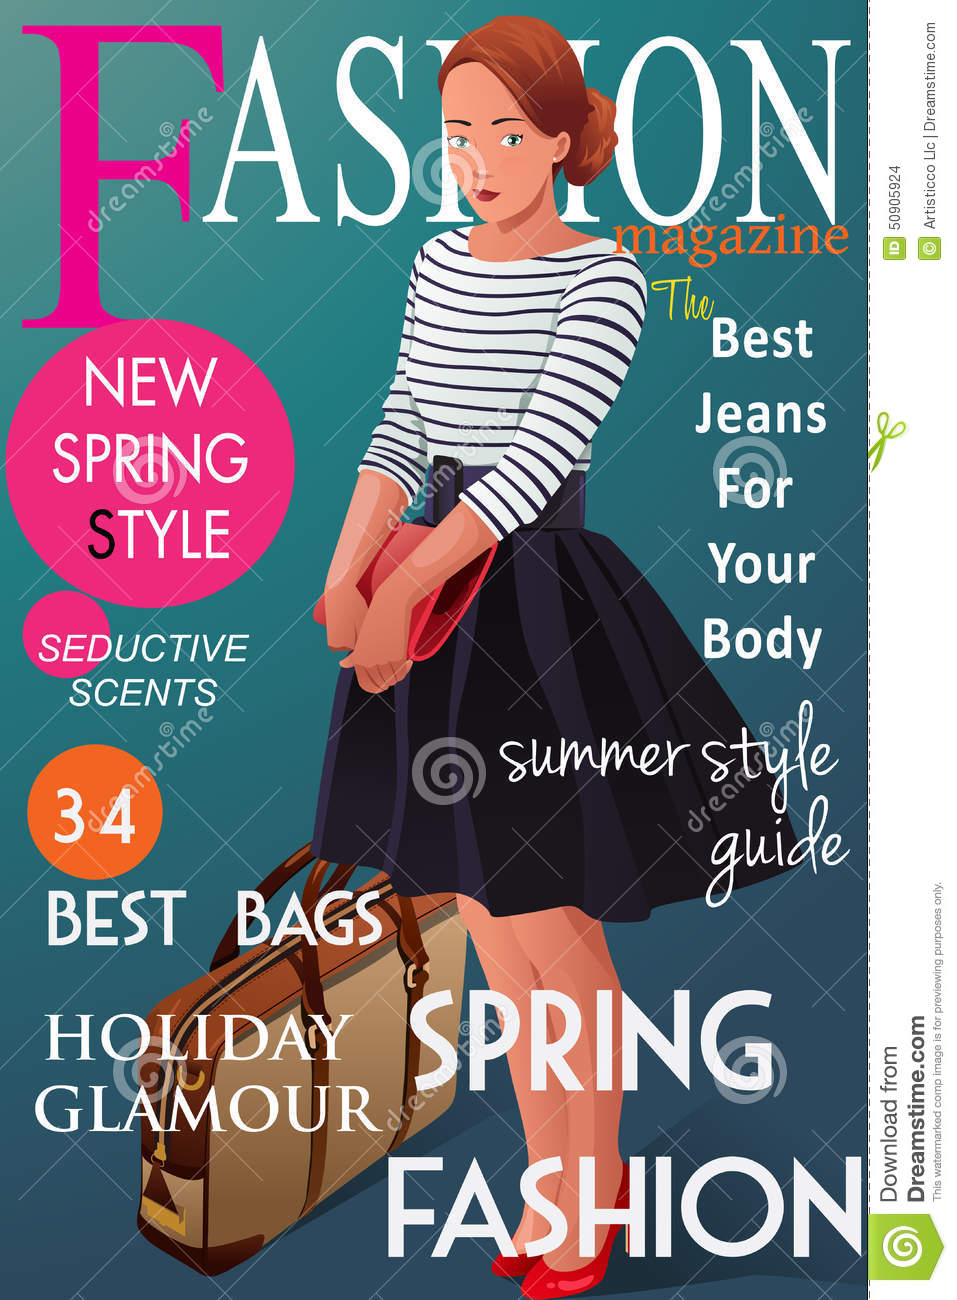 Fashion Magazine Cover Stock Illustration Illustration Of Design 50905924